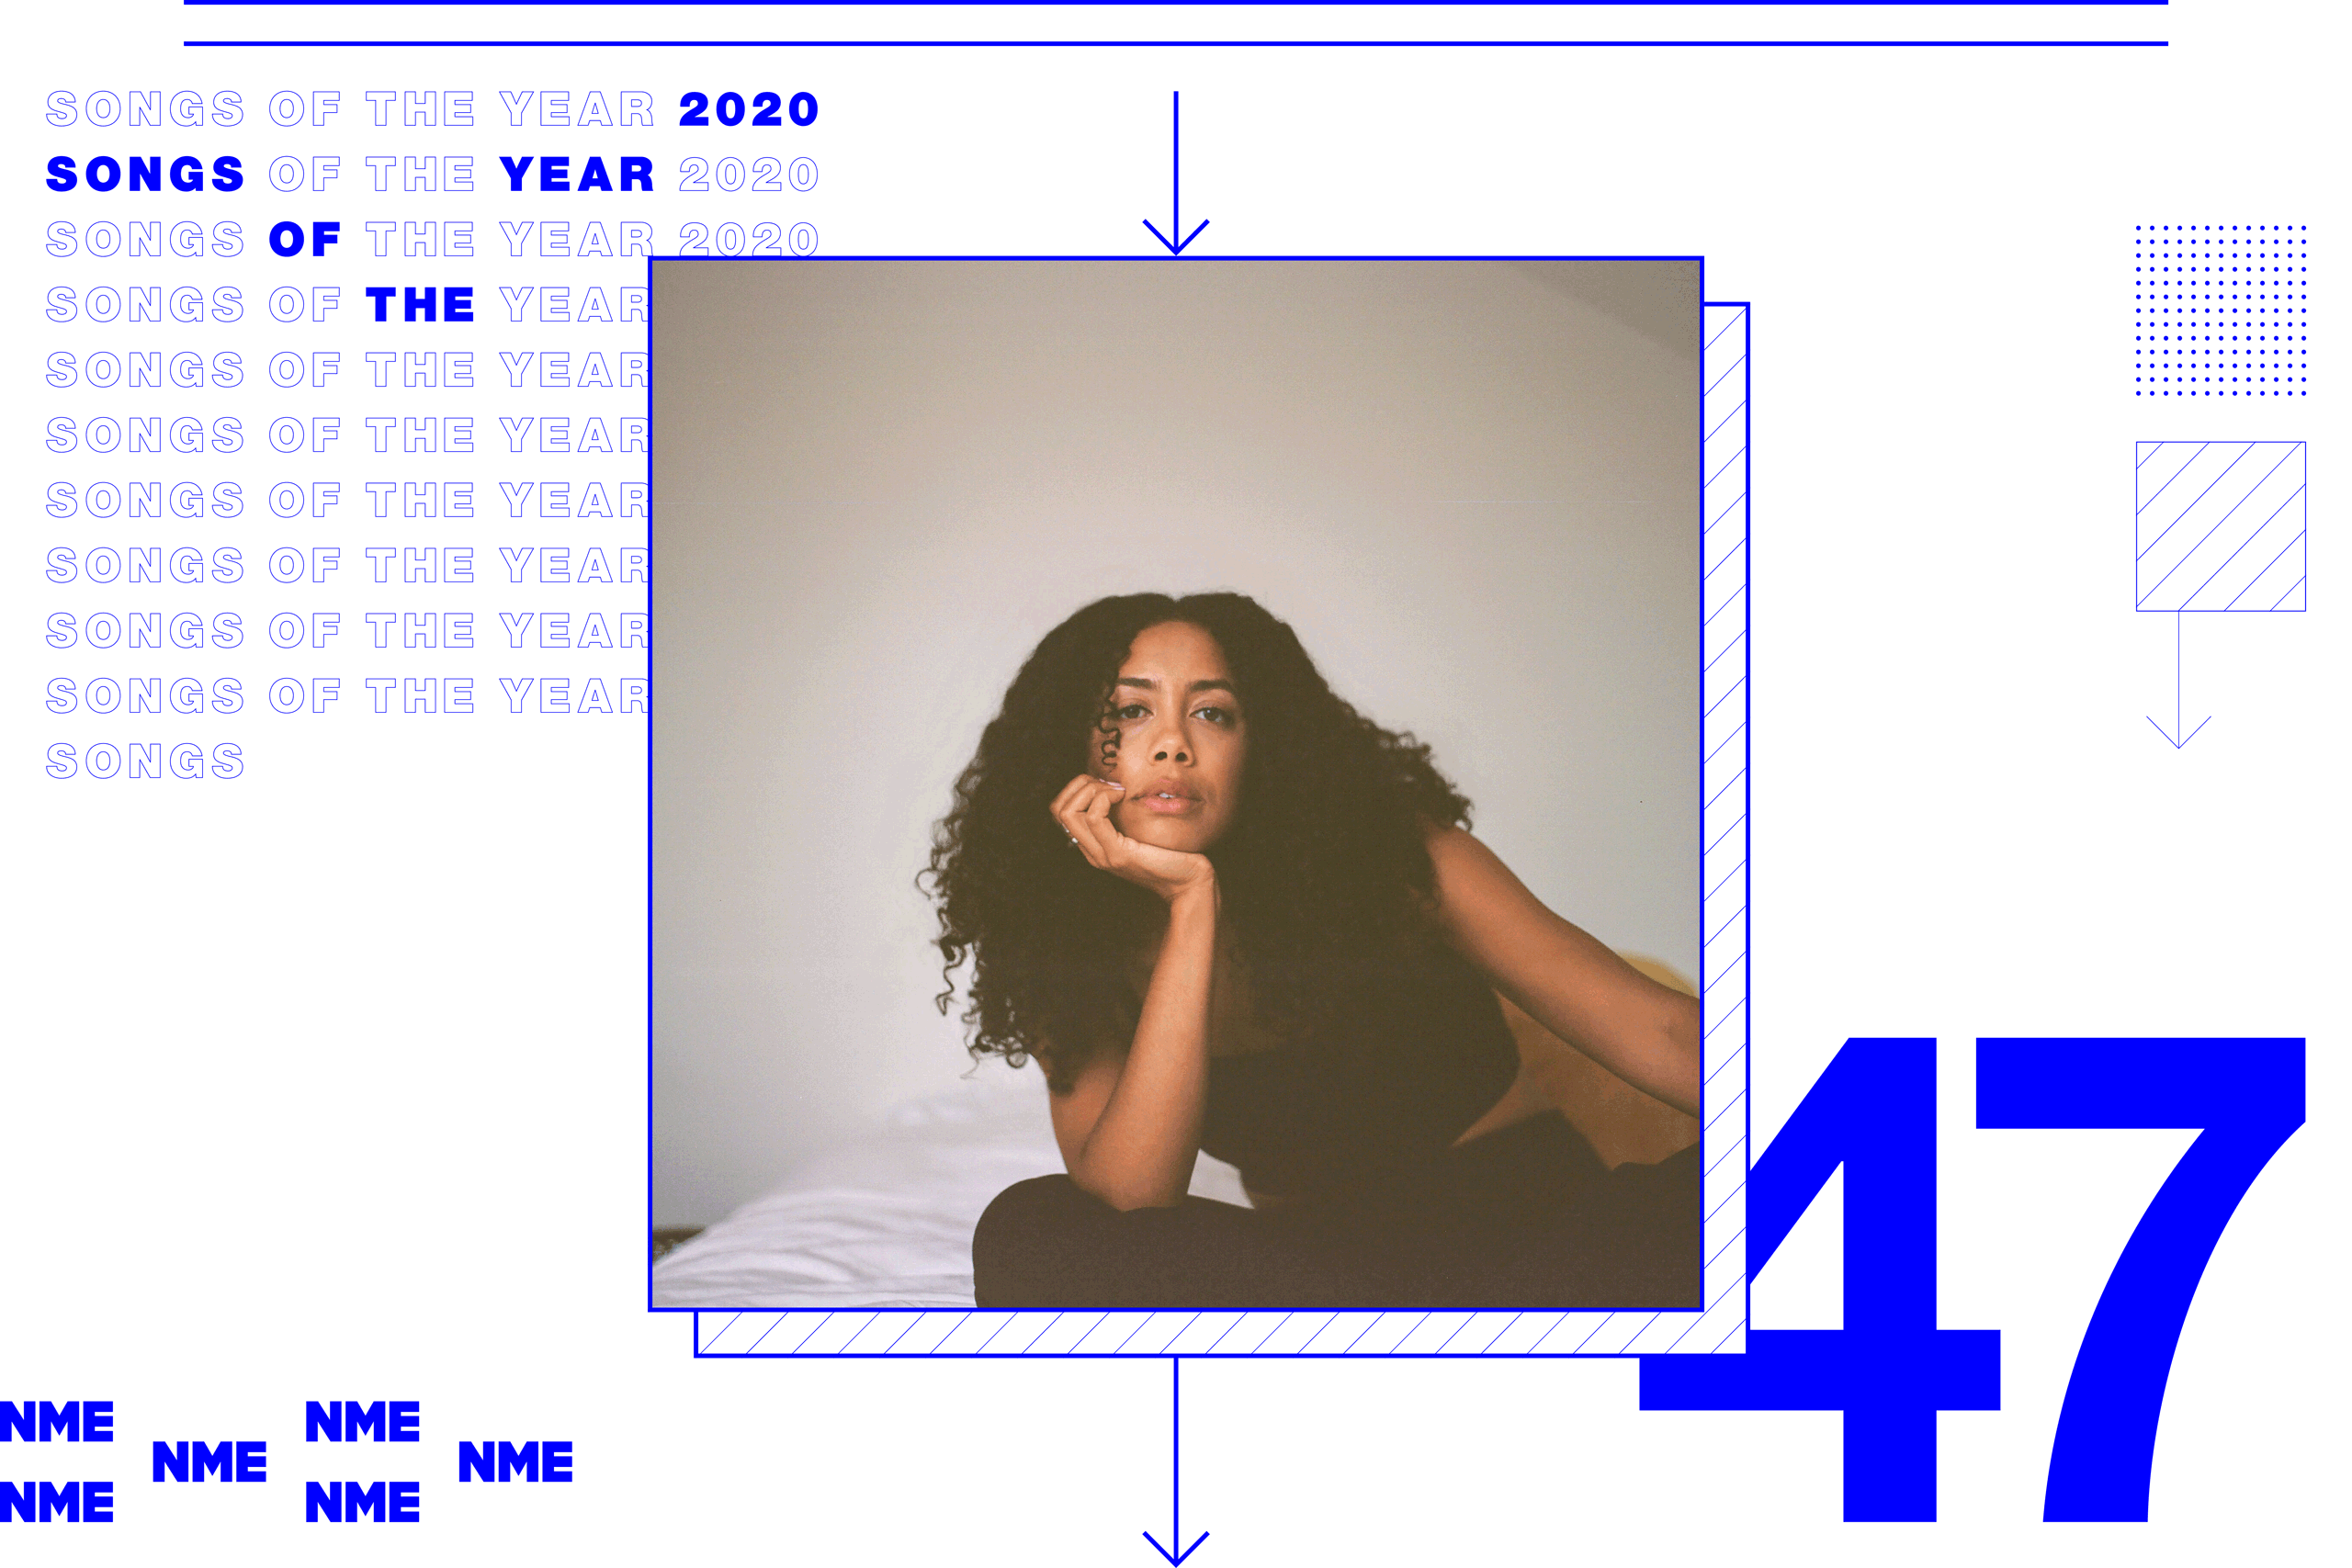 nme songs of the year Jayda G – 'Both Of Us'